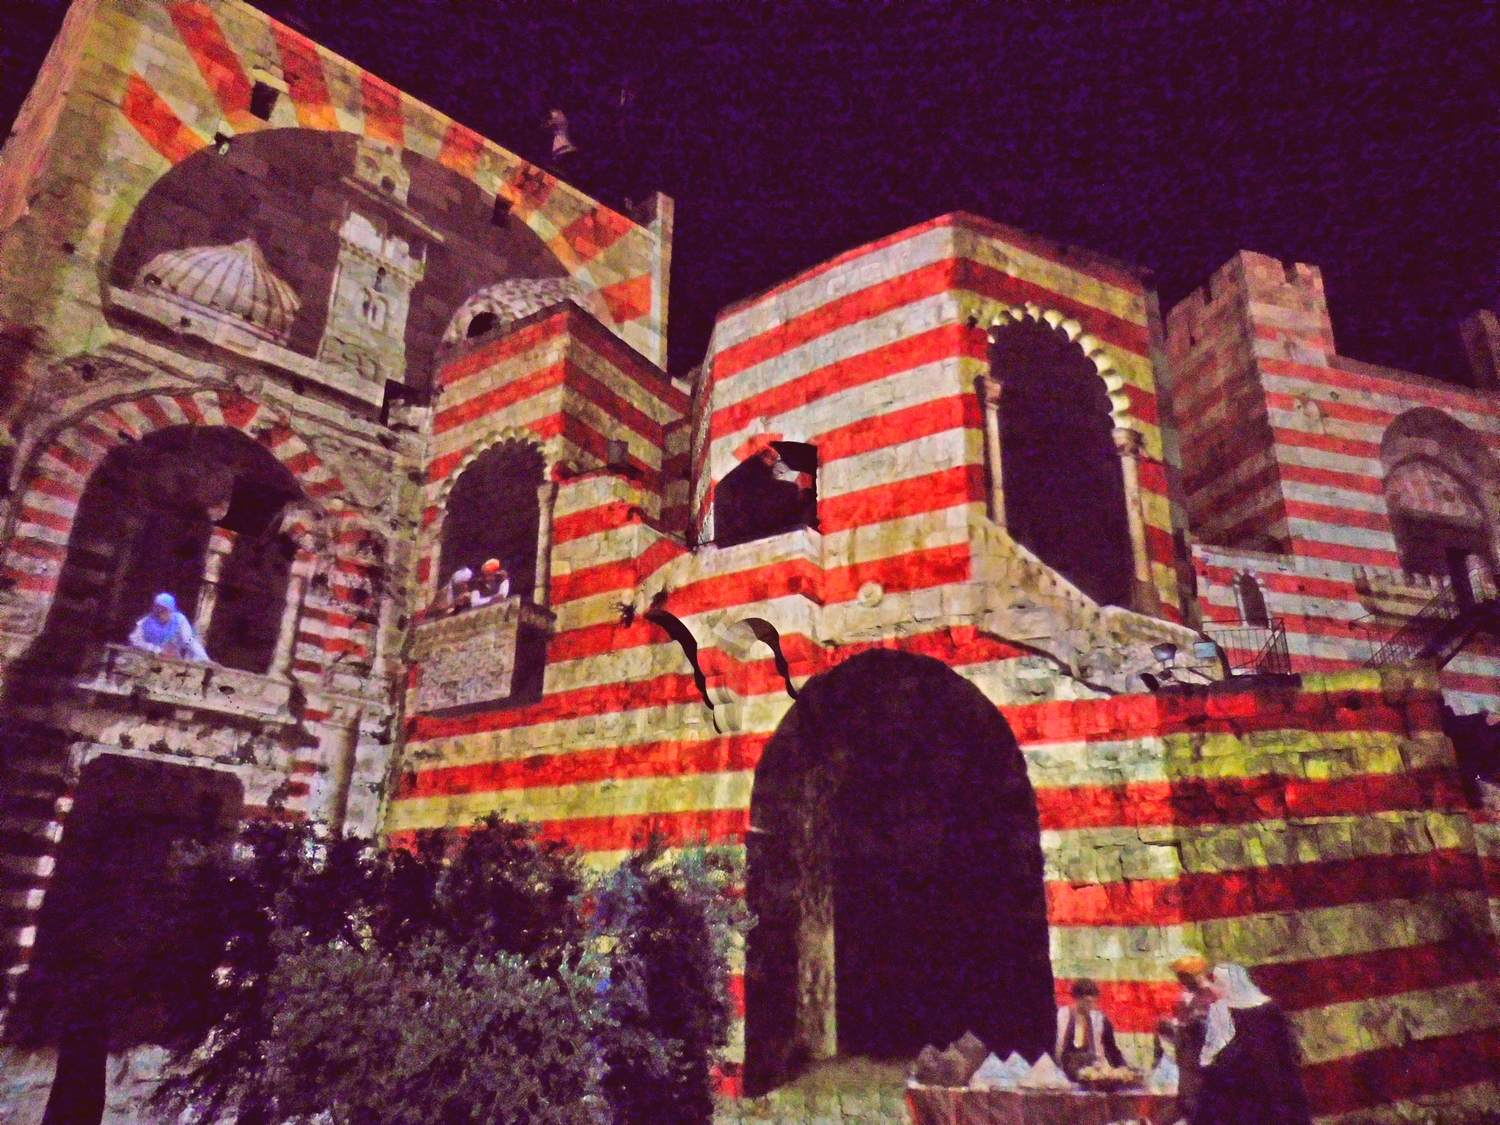 History of Jerusalem, tower of david, light show, arabic tents